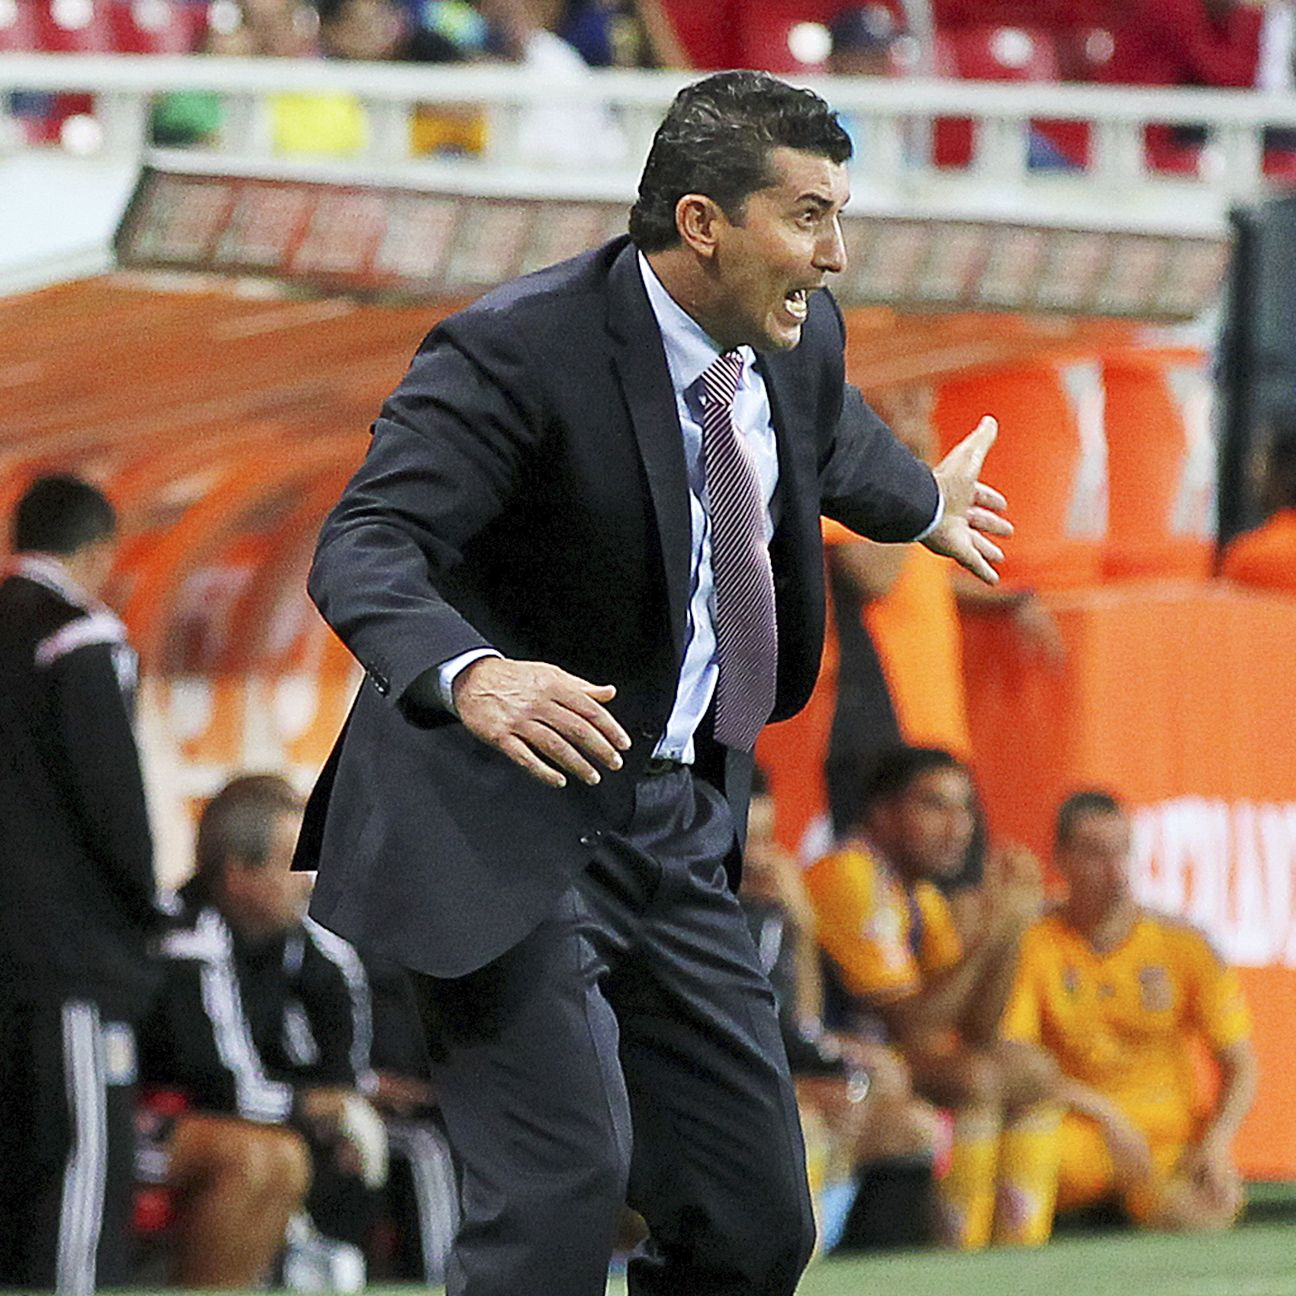 Chepo de la Torre has solidified Chivas' defense, but scoring goals remains a problem for the relegation-threatened Guadalajara side.